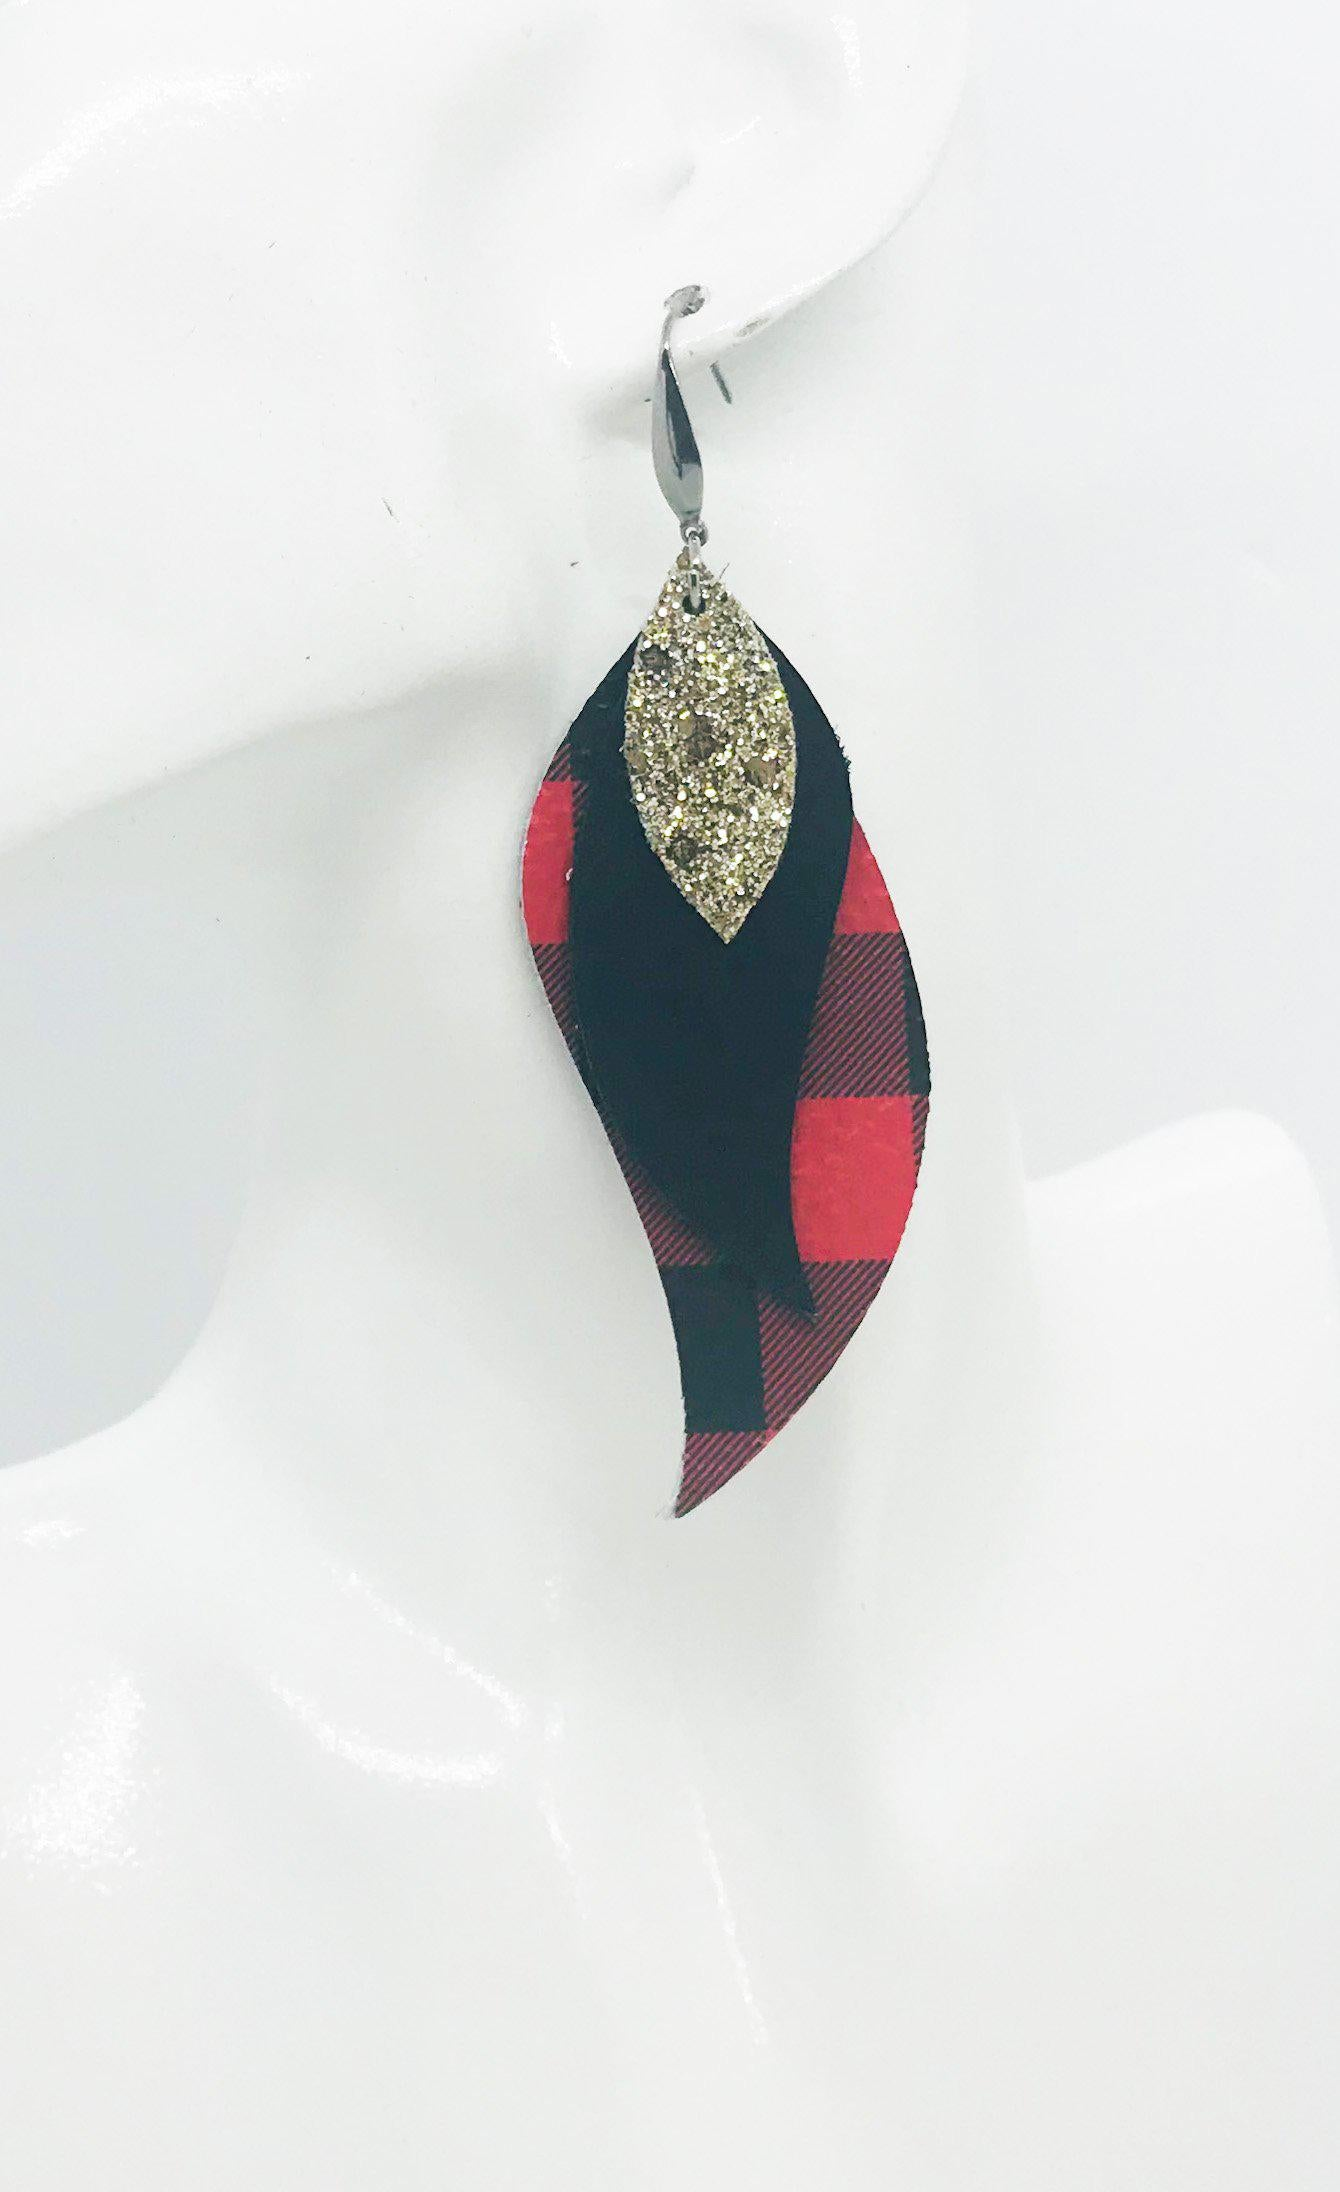 Plaid Leather and Glitter Earrings - E19-1019